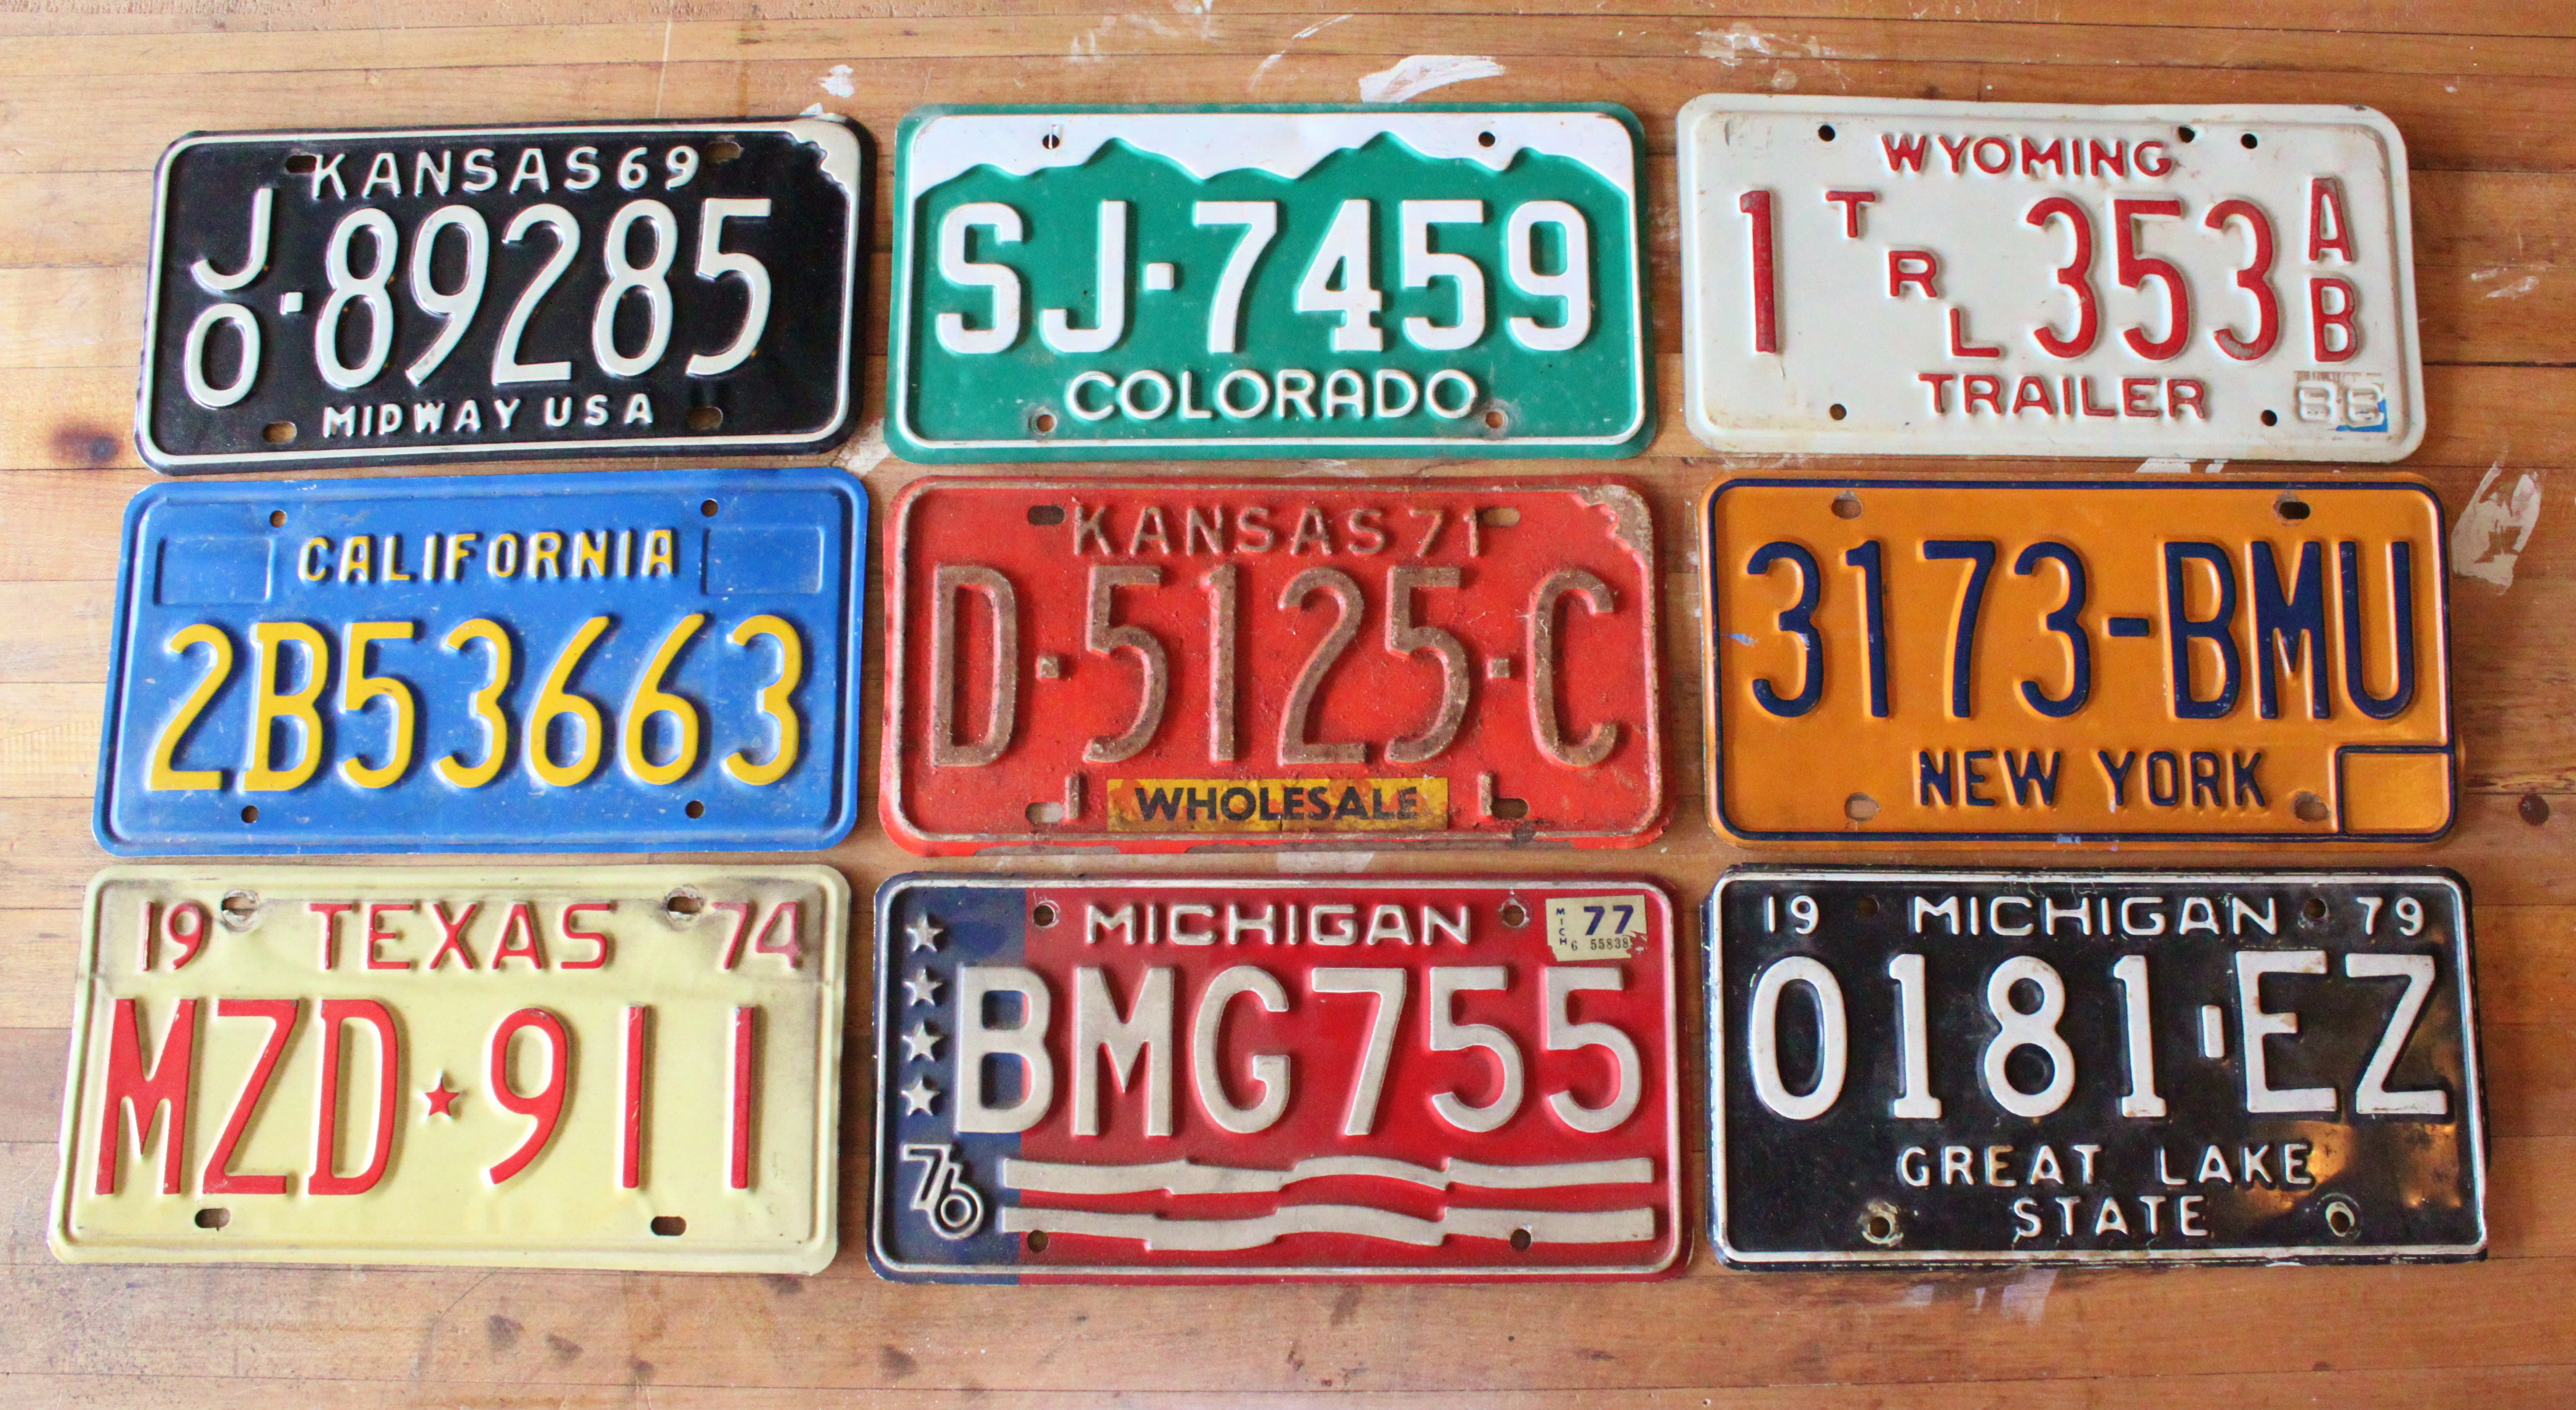 A Texas License Plate Becomes a Box | THE CAVENDER DIARY